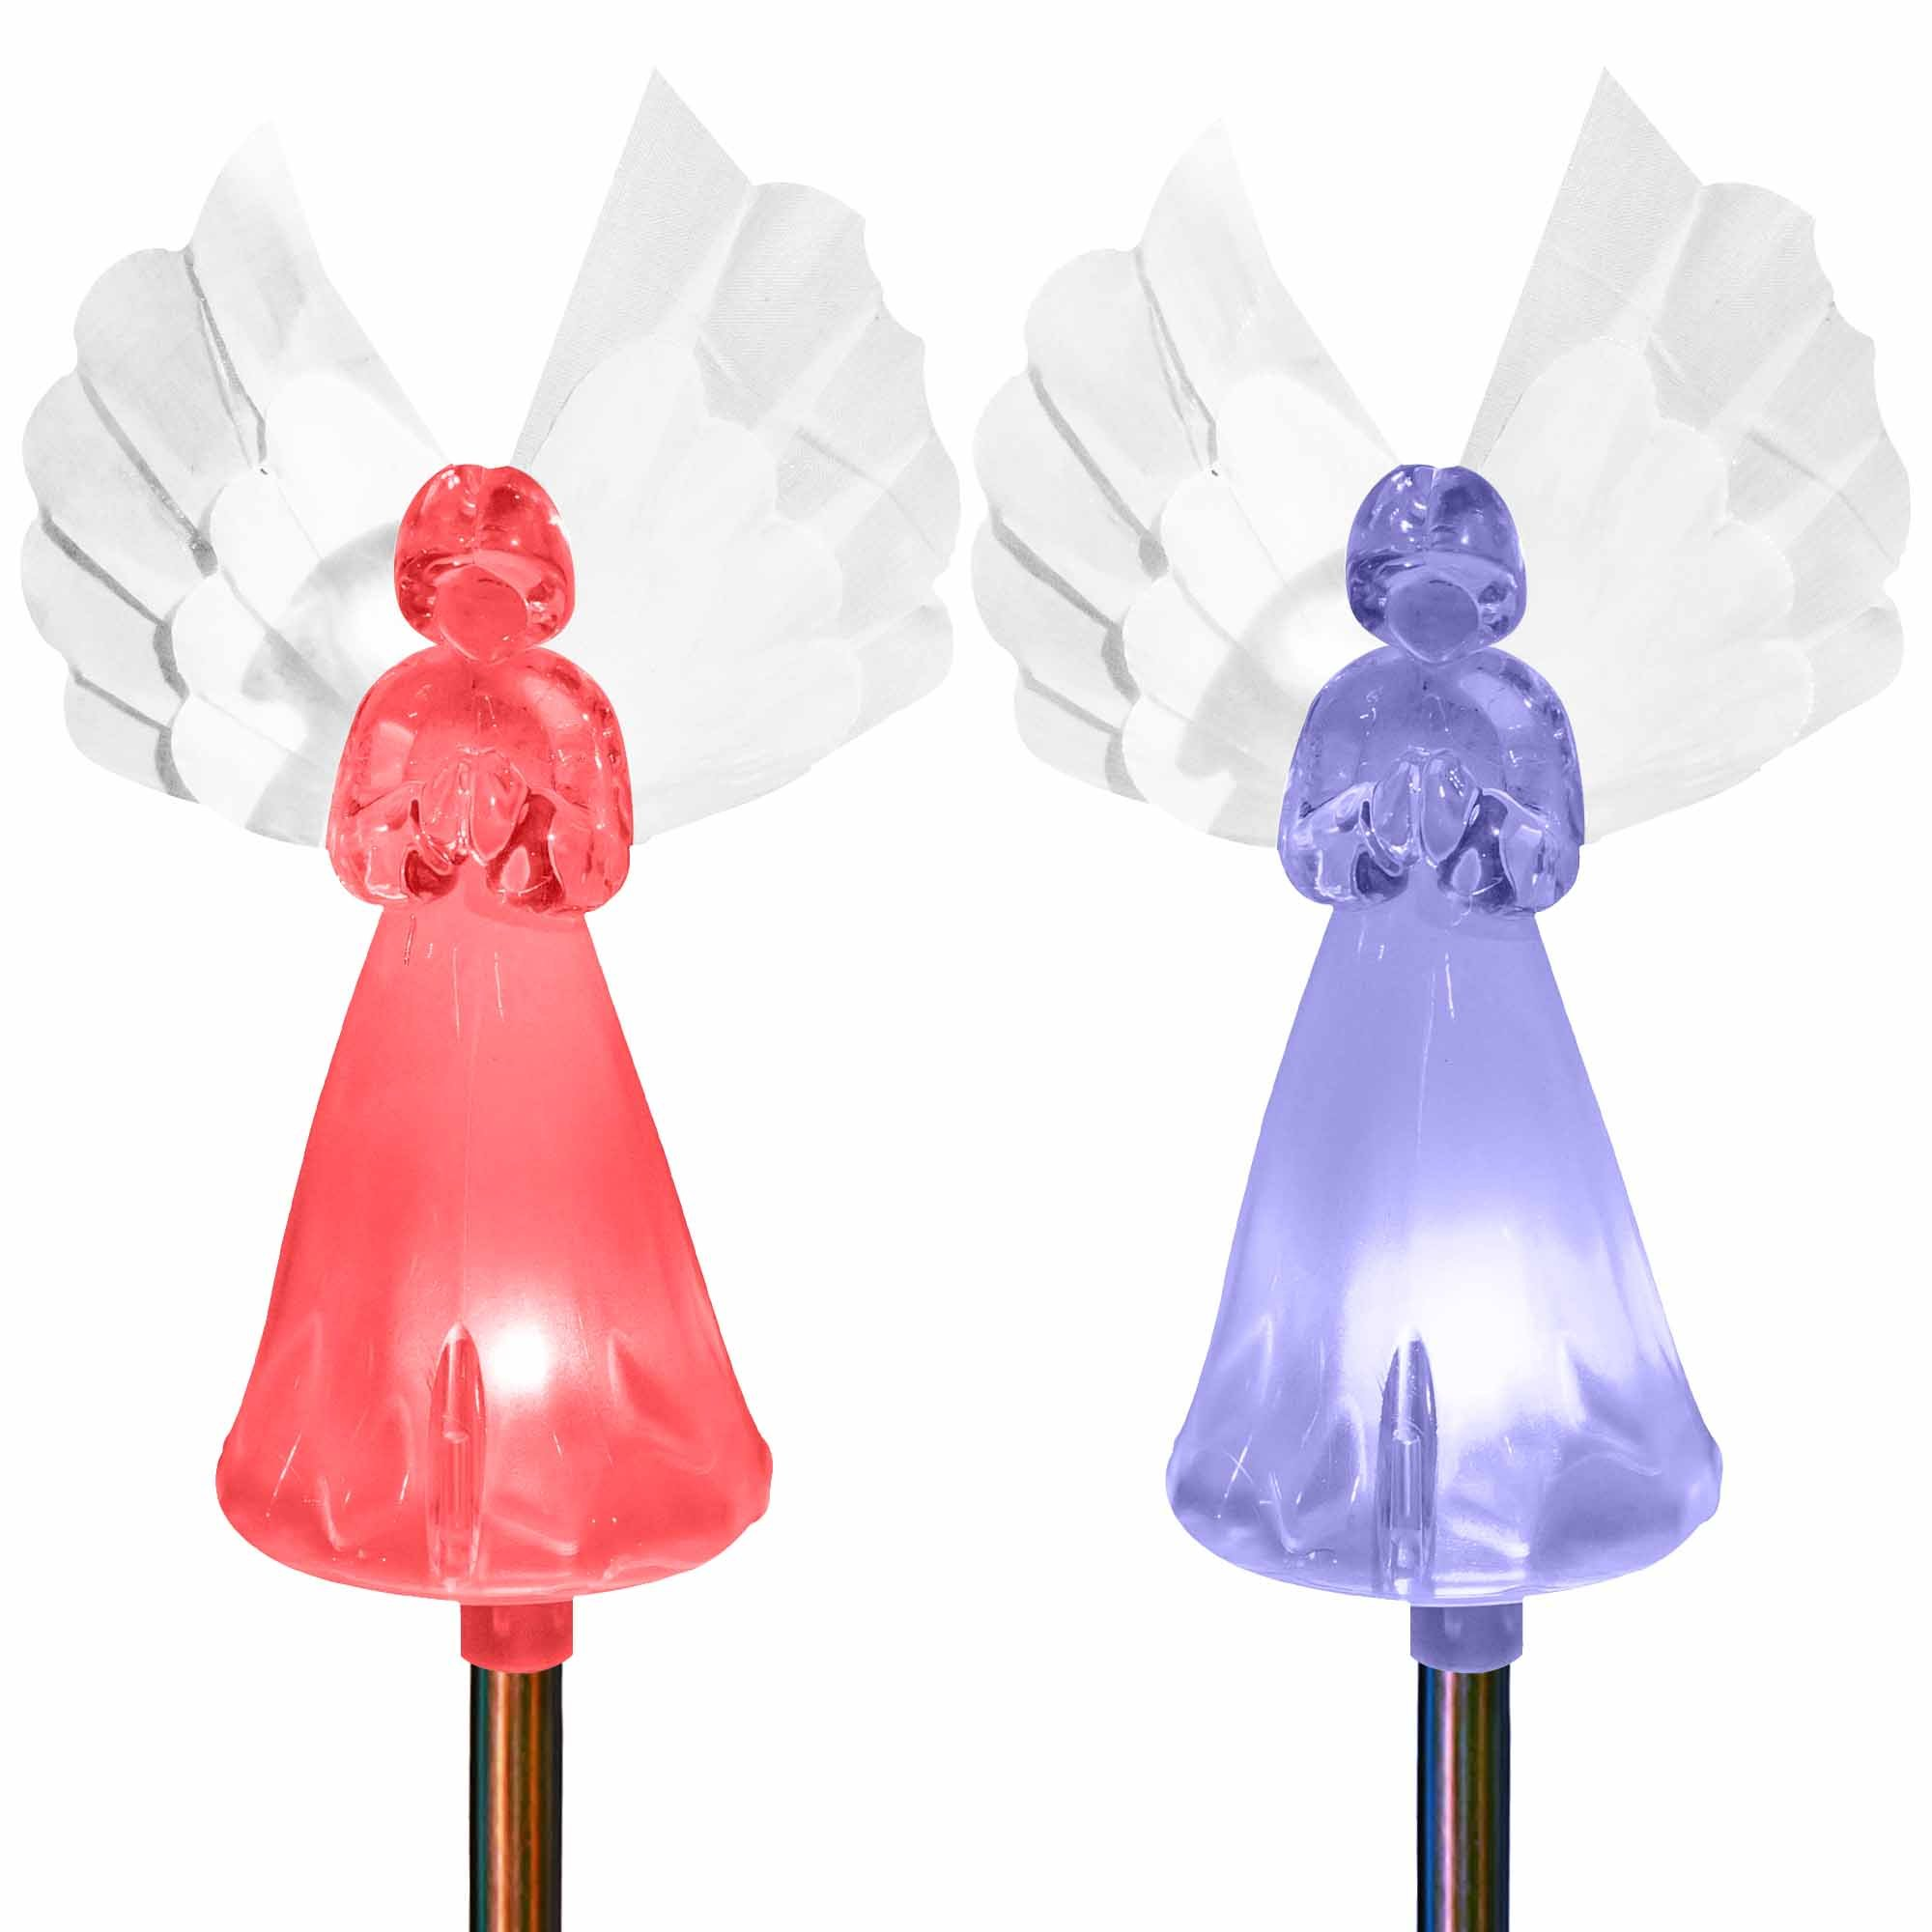 Solar Powered Frosty Fairy Angel Lights Color Changing Stakes For Christmas Thanksgiving Garden Decoration Outdoor Lawn Yard Figurine Cemetery by SolarDuke